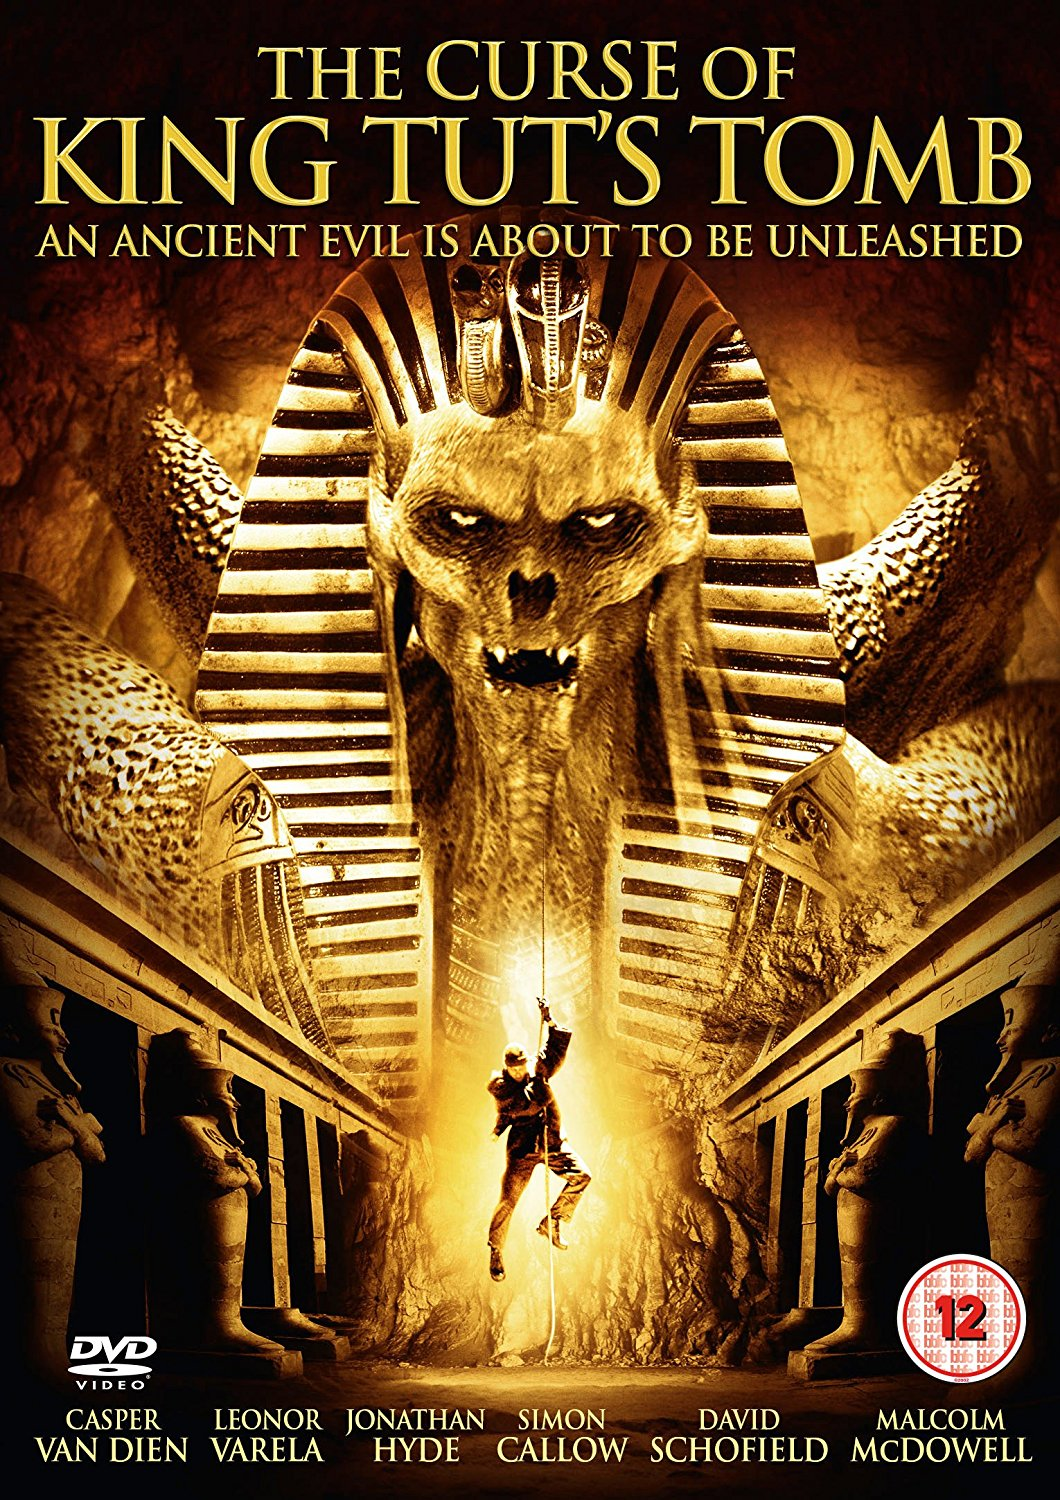 The Curse Of King Tuts Tomb Torrent: The Curse Of King Tut's Tomb (DVD) (C-12) 5060352300413